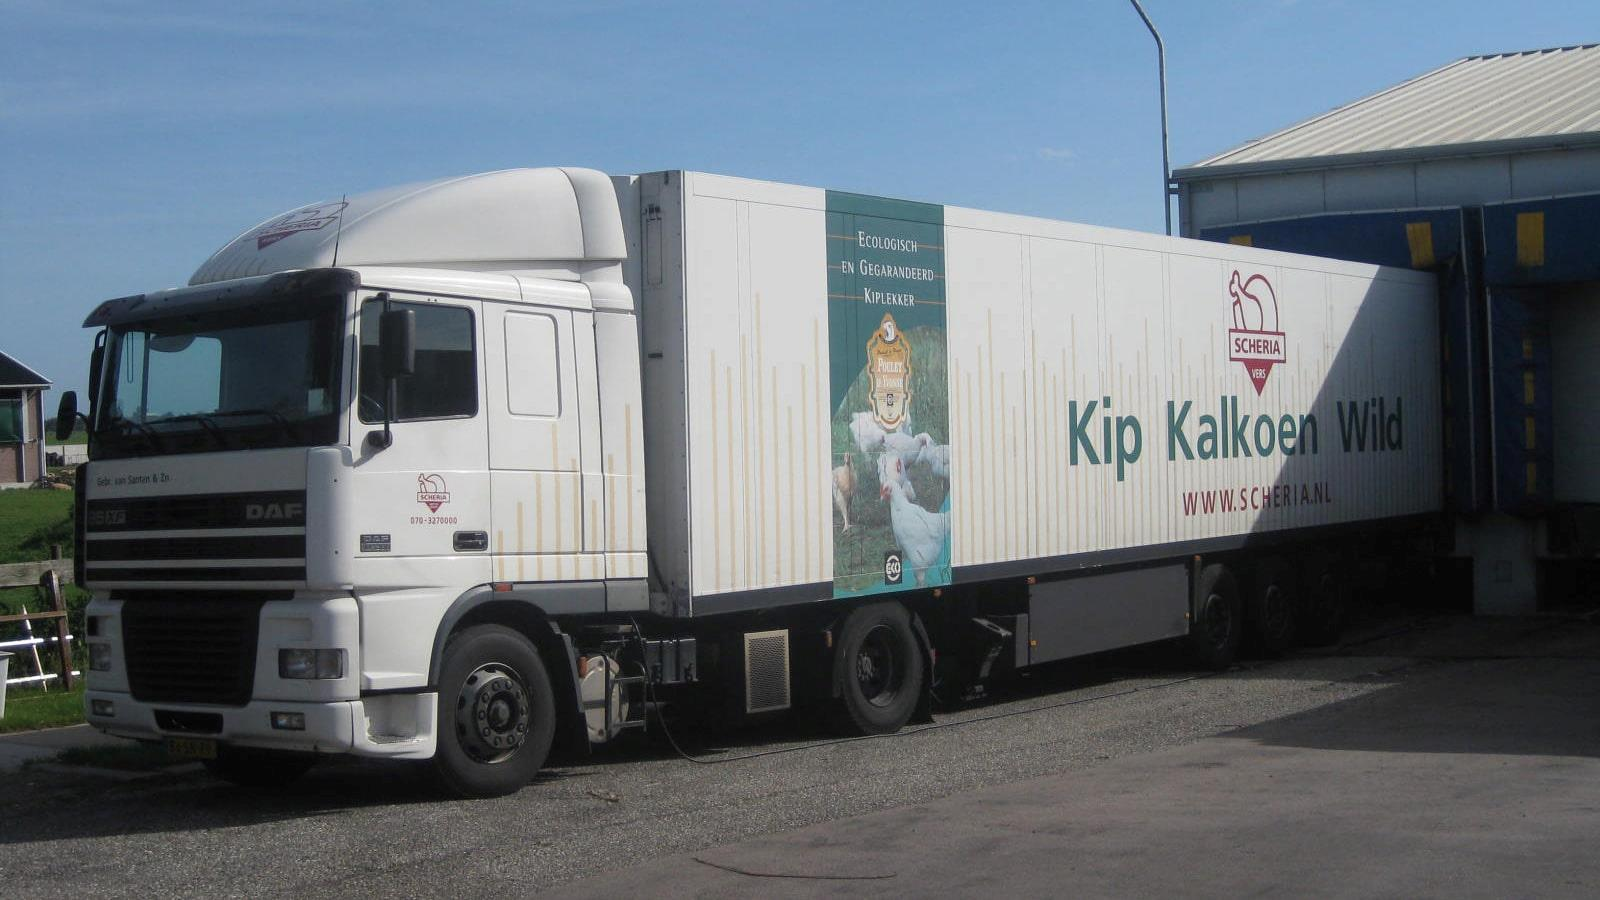 Refrigerated truck from Scheria is loaded with goods